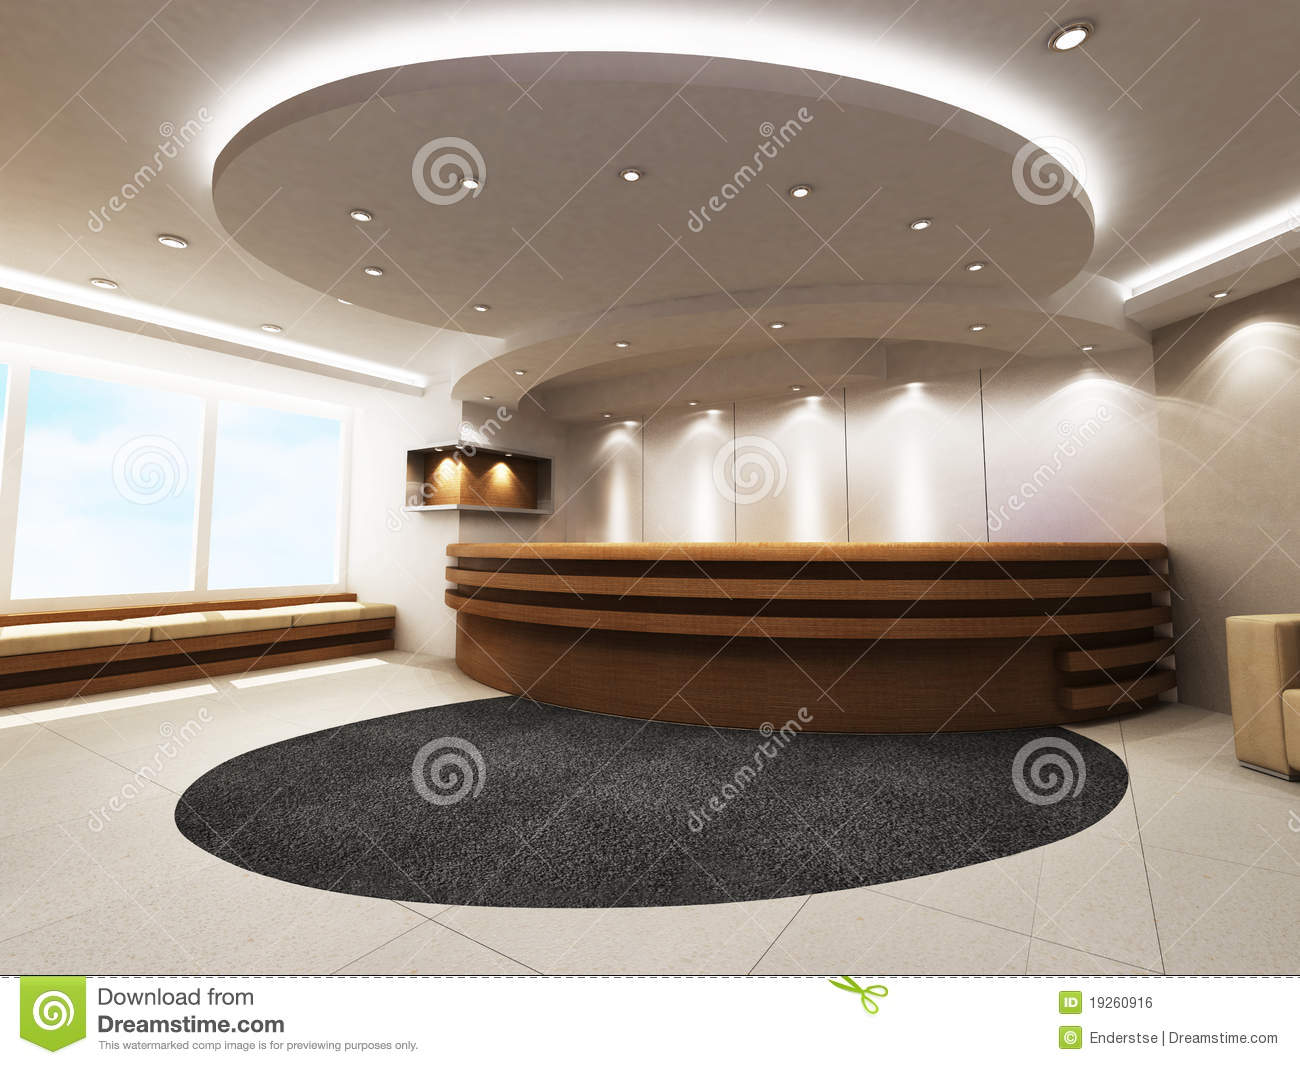 Reception Counter Royalty Free Stock Image - Image: 19260916